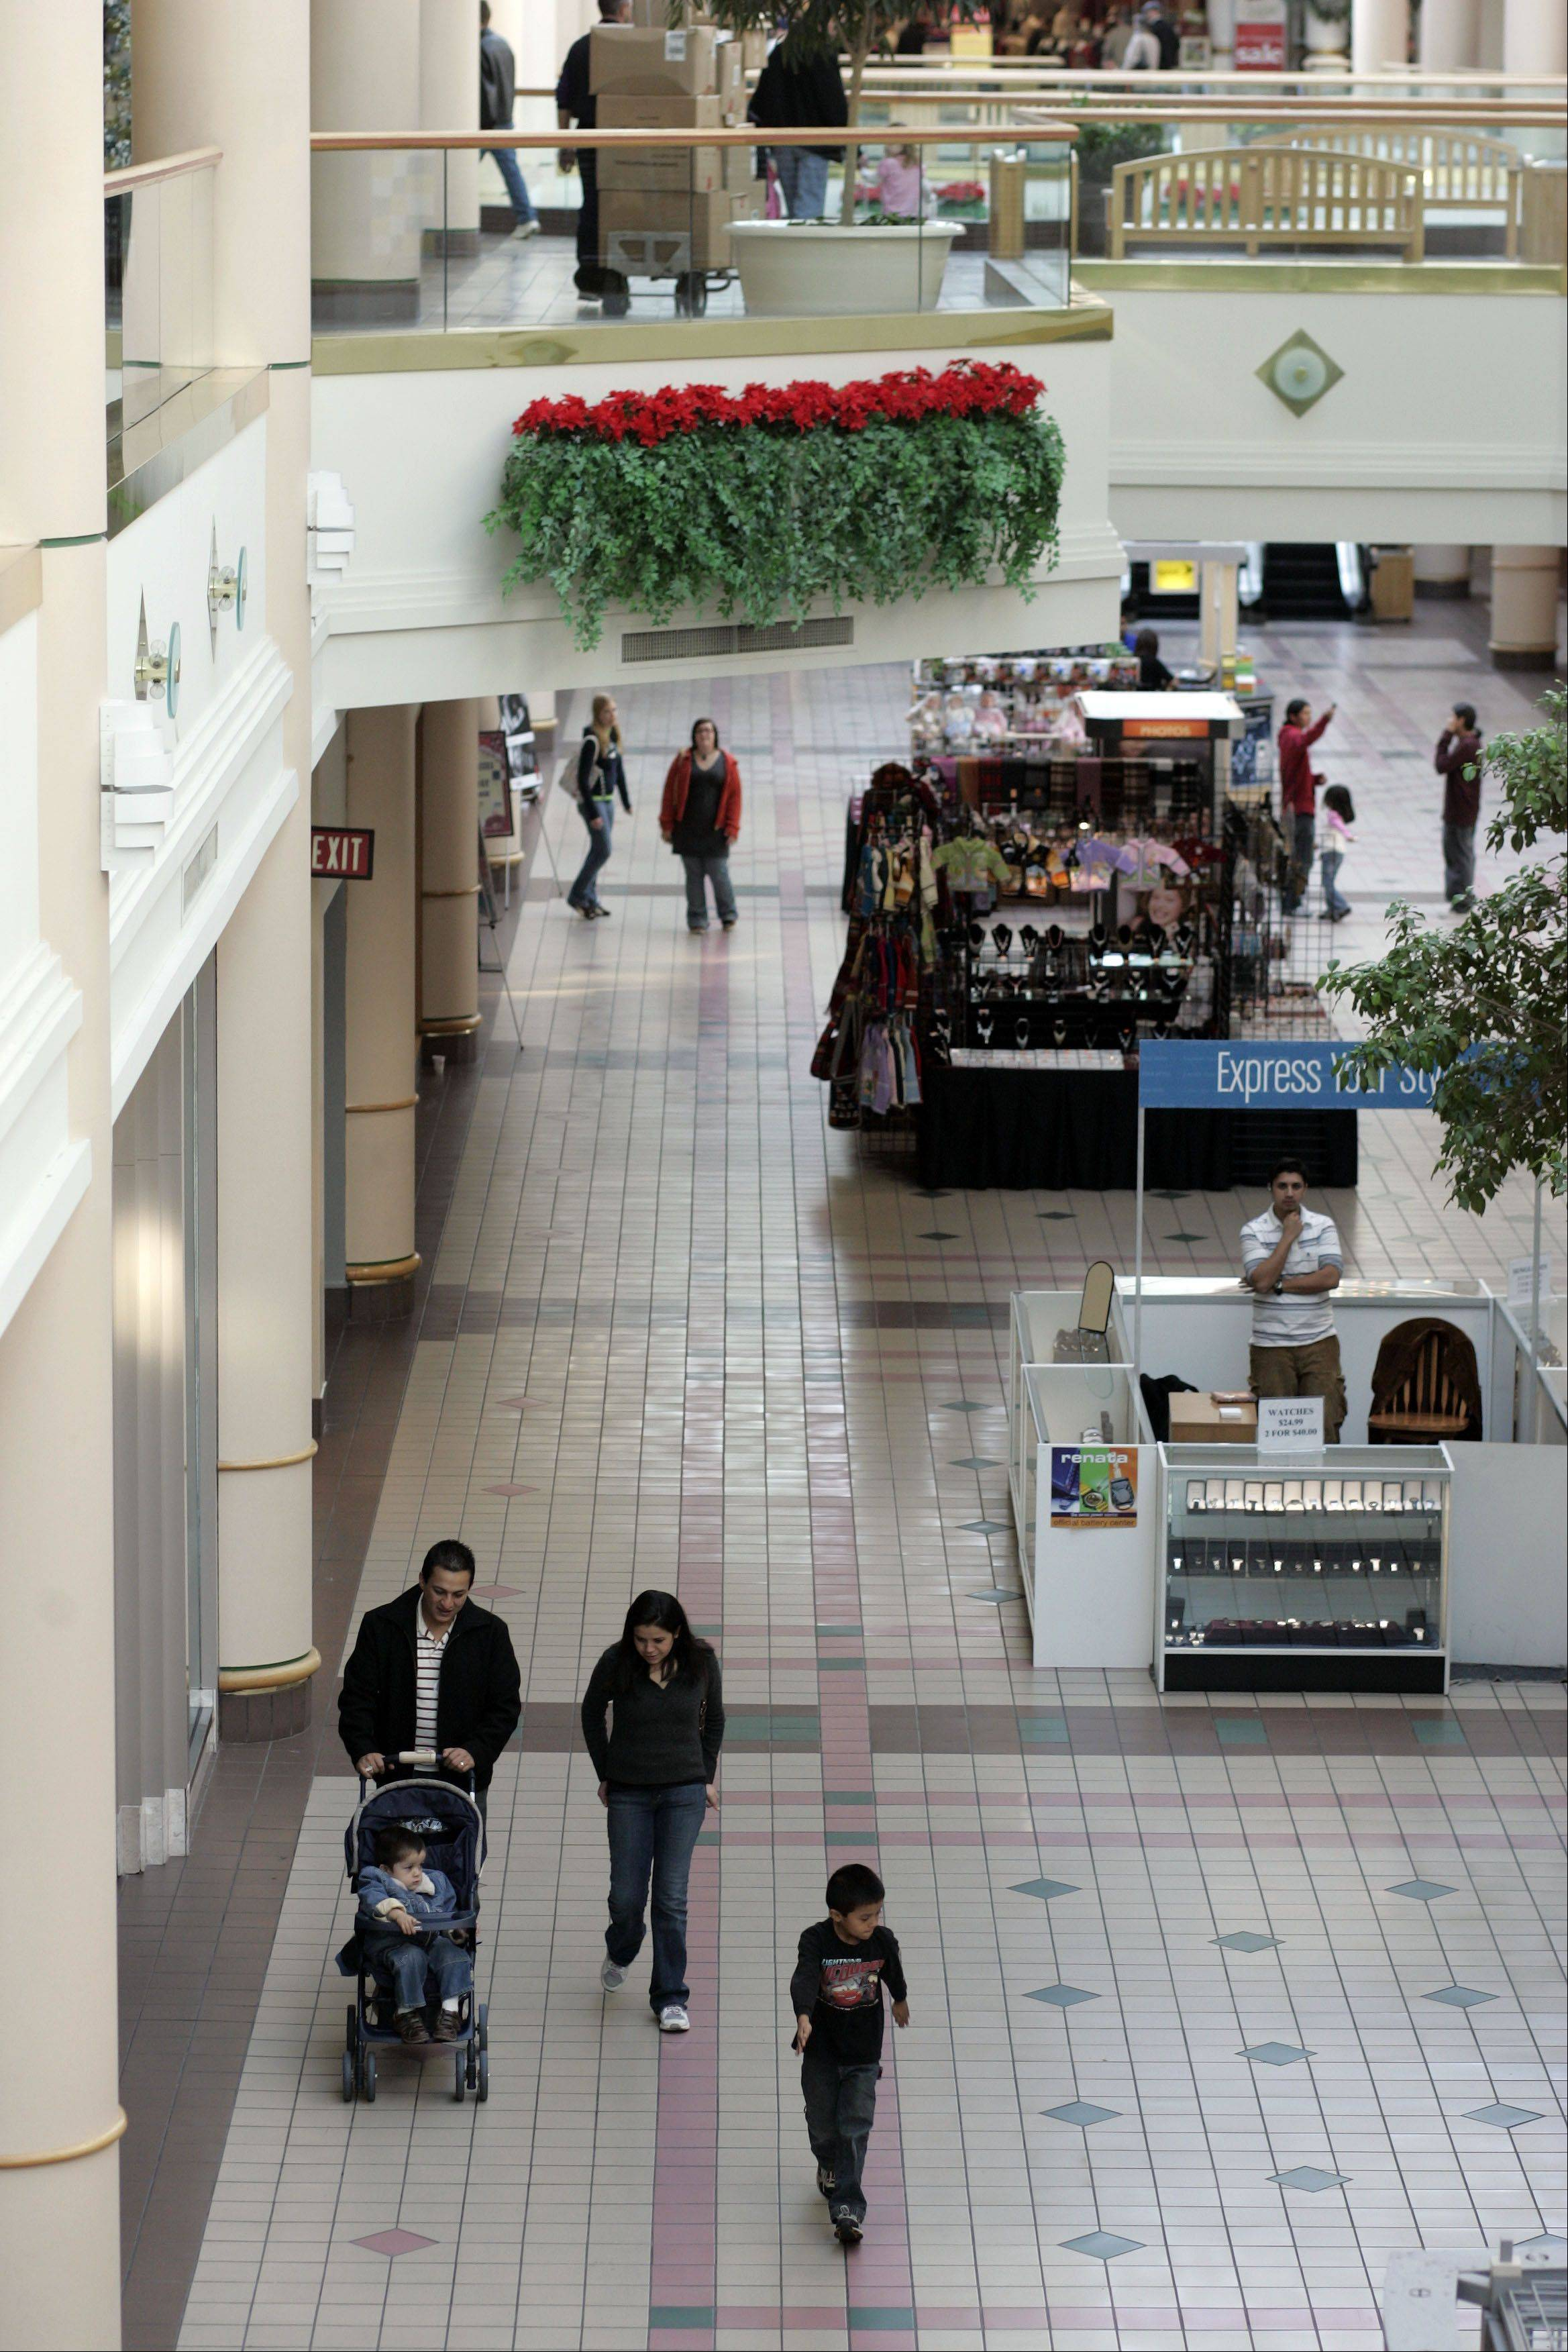 Even on Black Friday in November 2007, Charlestowne Mall could not attract the level of foot traffic needed to sustain thriving shops.